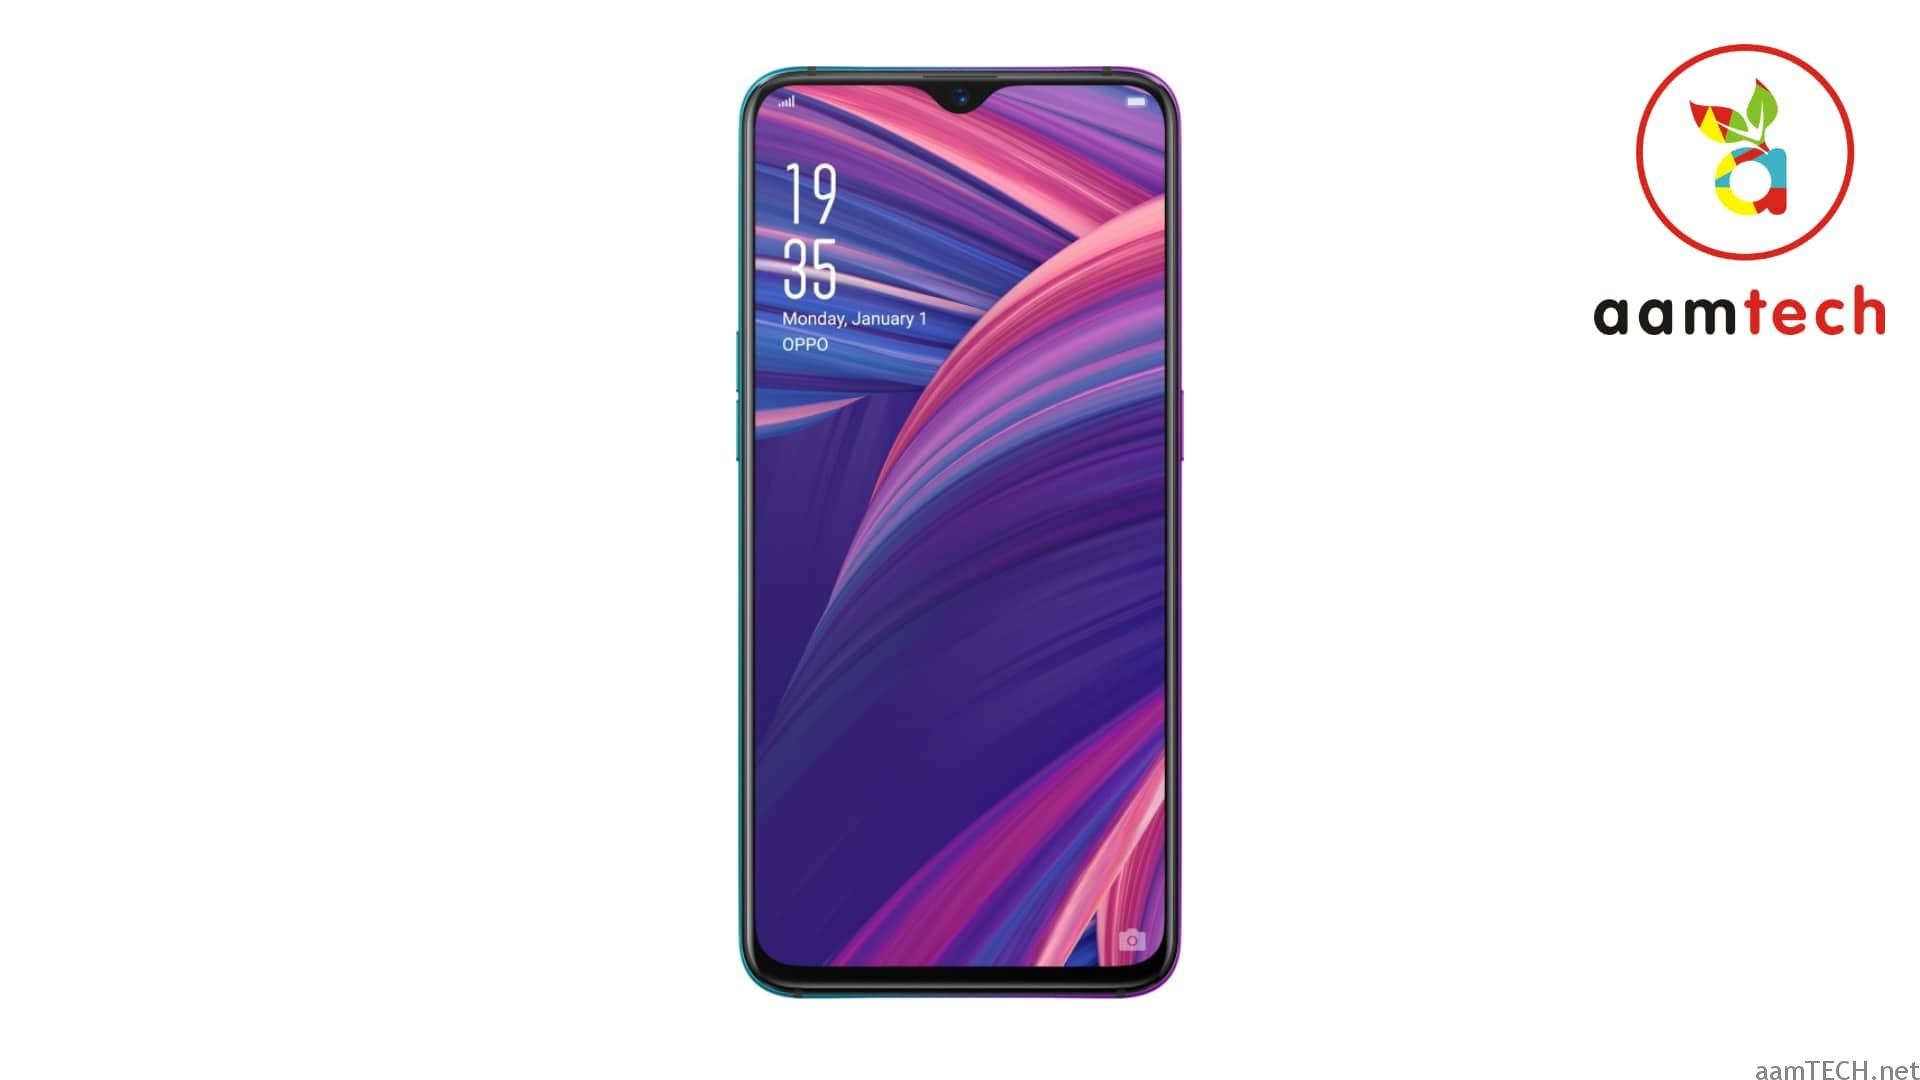 Oppo R17 Pro Price and Specifications in India 3 - aamtech